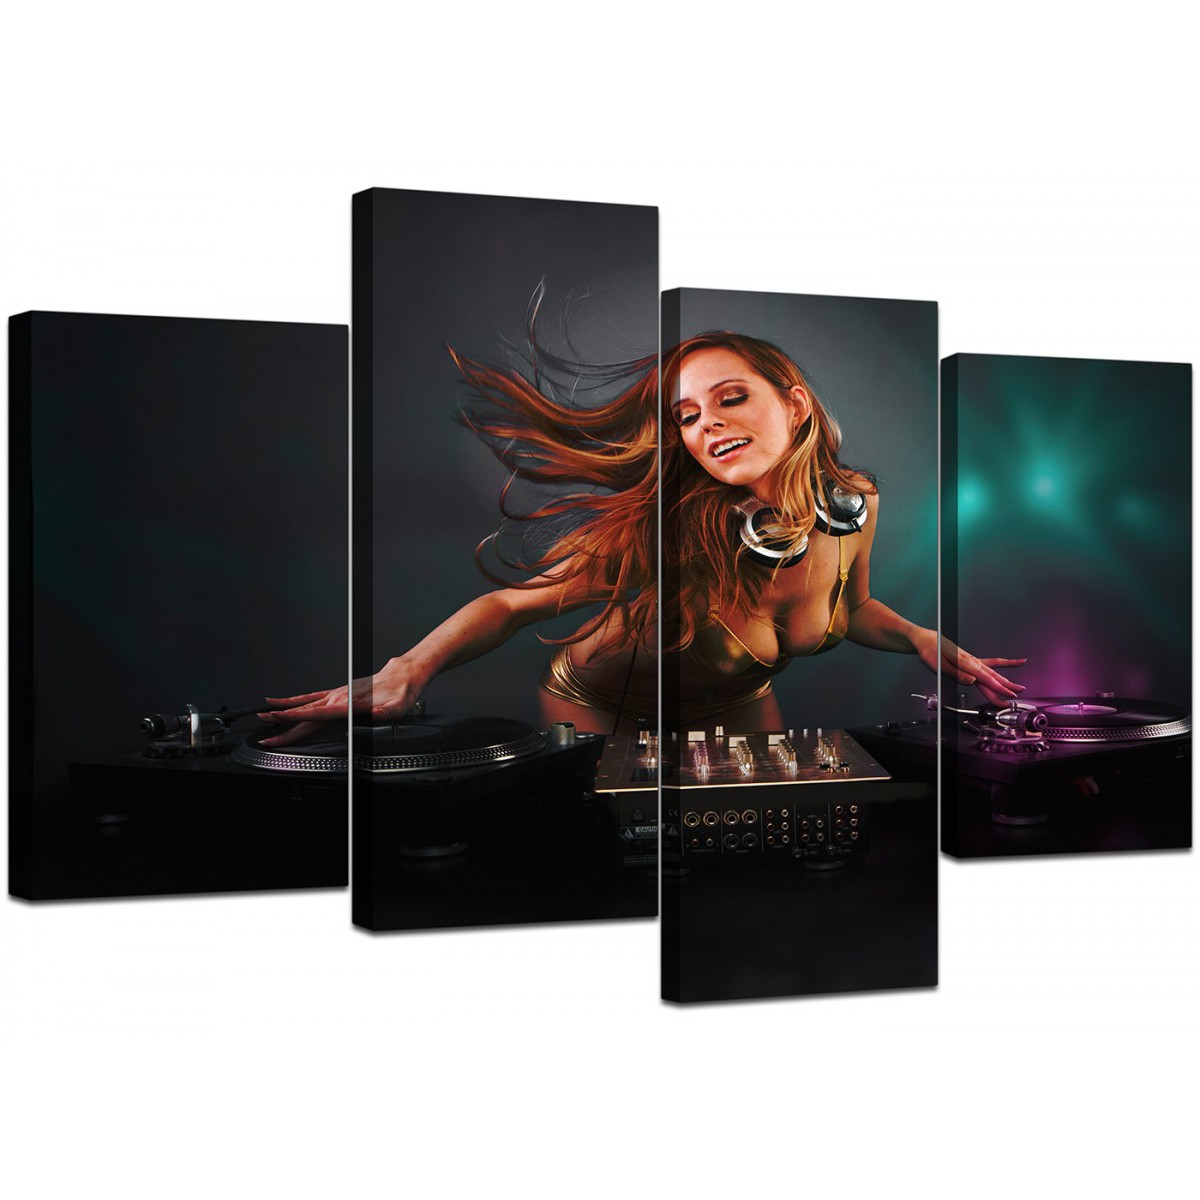 Canvas Art Of Dj With Decks For Your Teenage Boys Bedroom